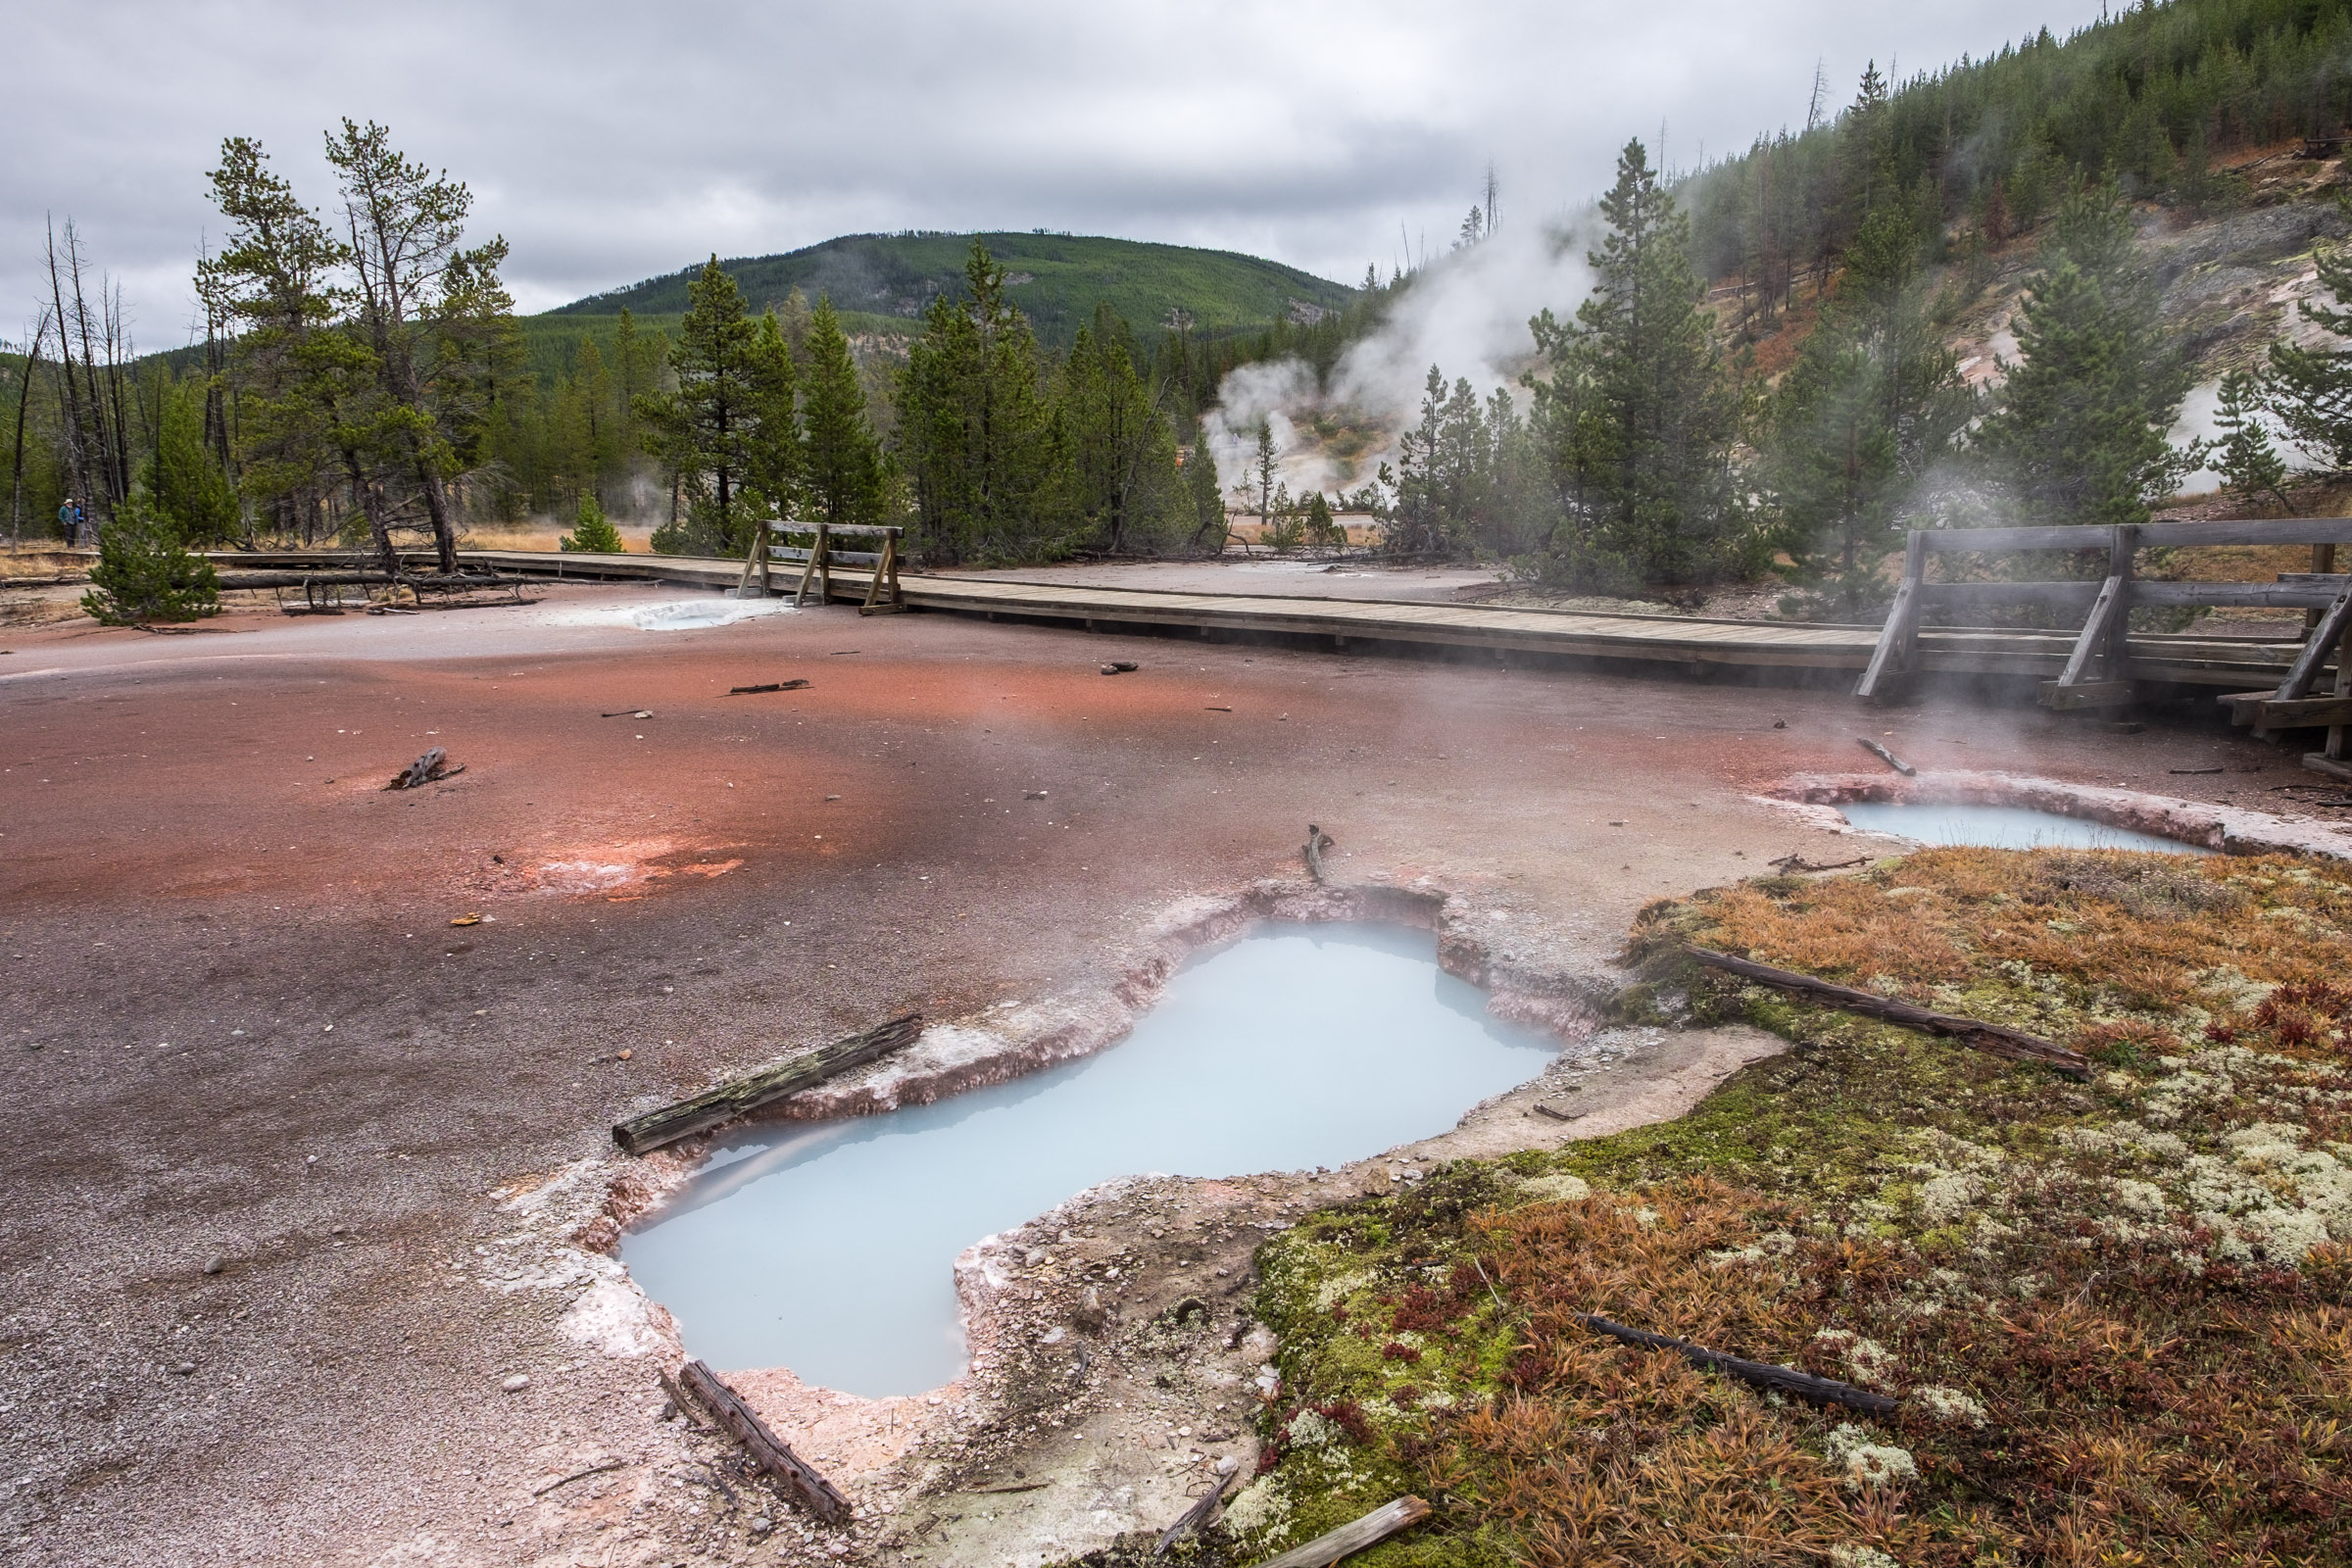 A hot spring at the Norris Geyser Basin at Yellowstone National Park.